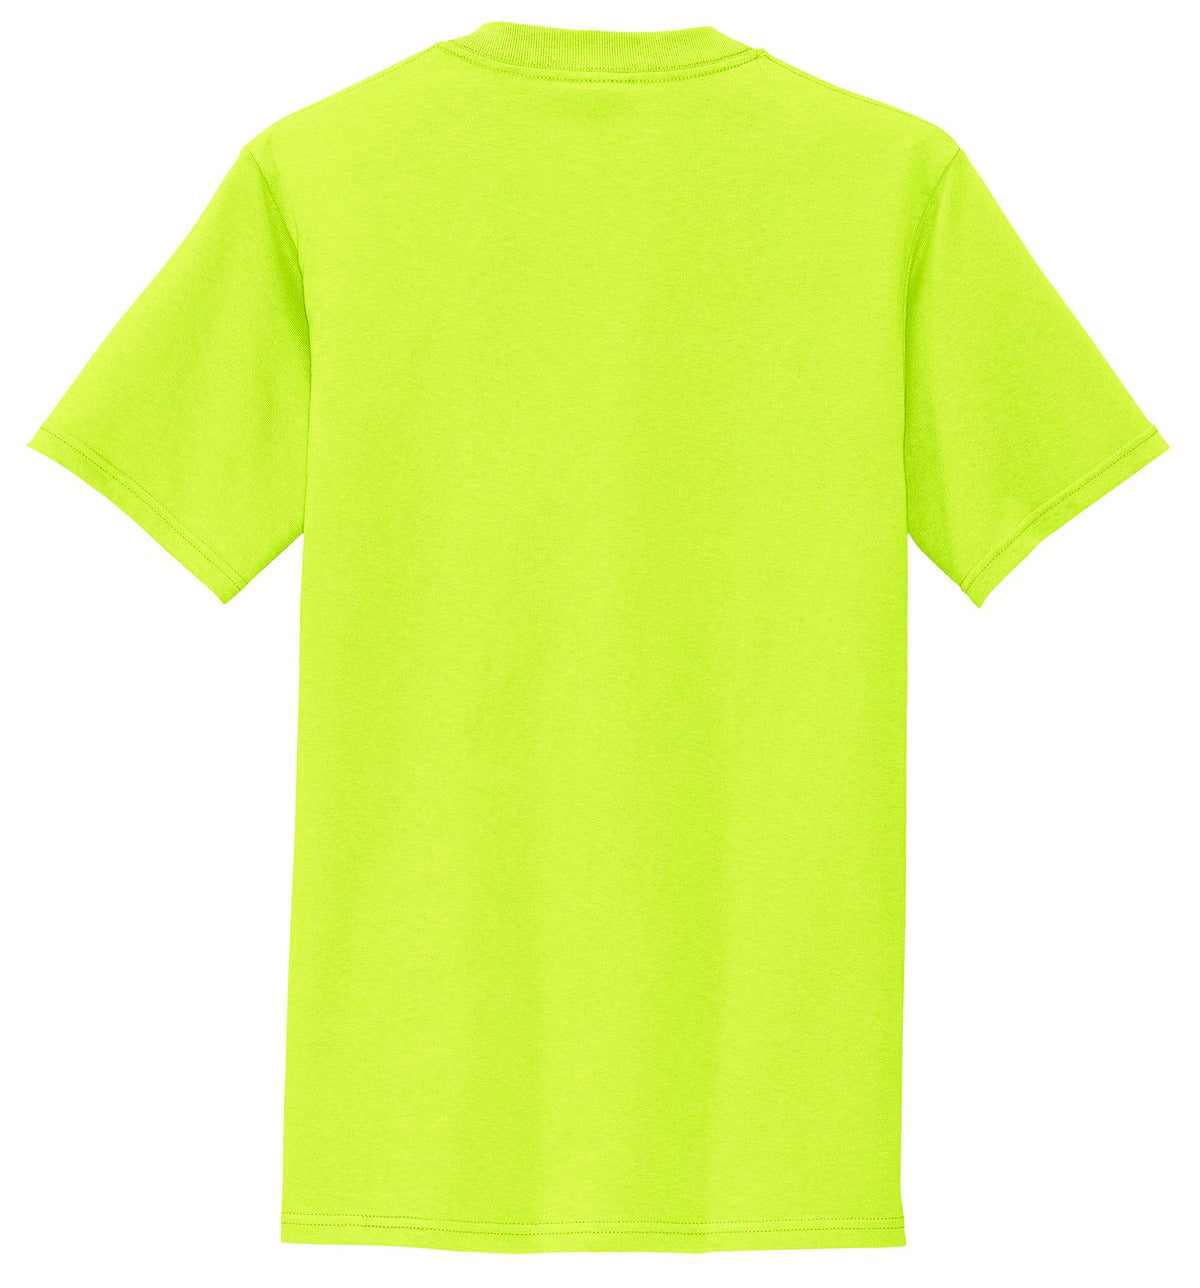 Mafoose Men's All American Tee Shirt with Pocket Safety Green-Back